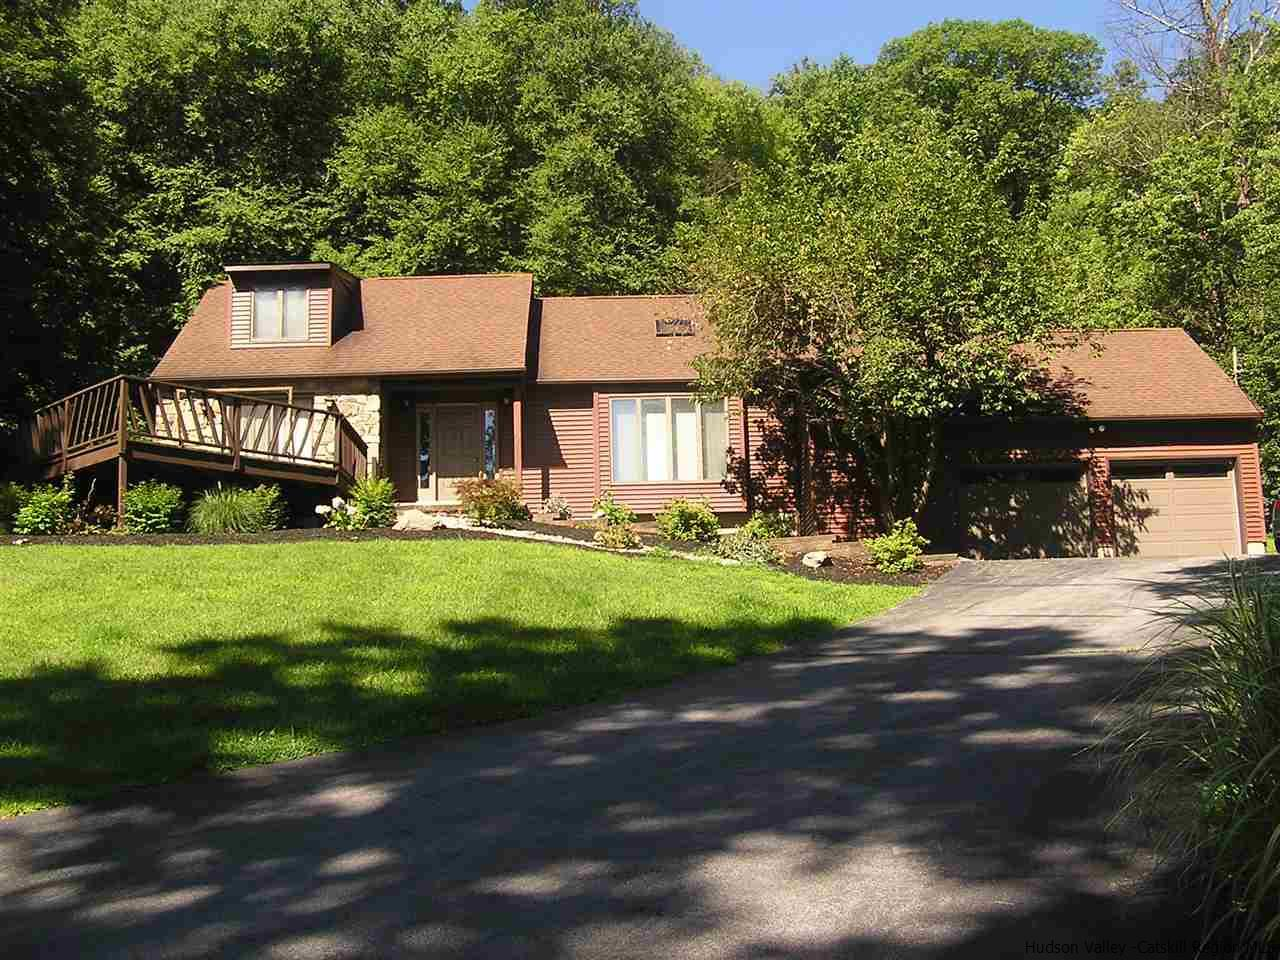 Single Family Home for Sale at 139 Bellevue 139 Bellevue Highland, New York 12528 United States